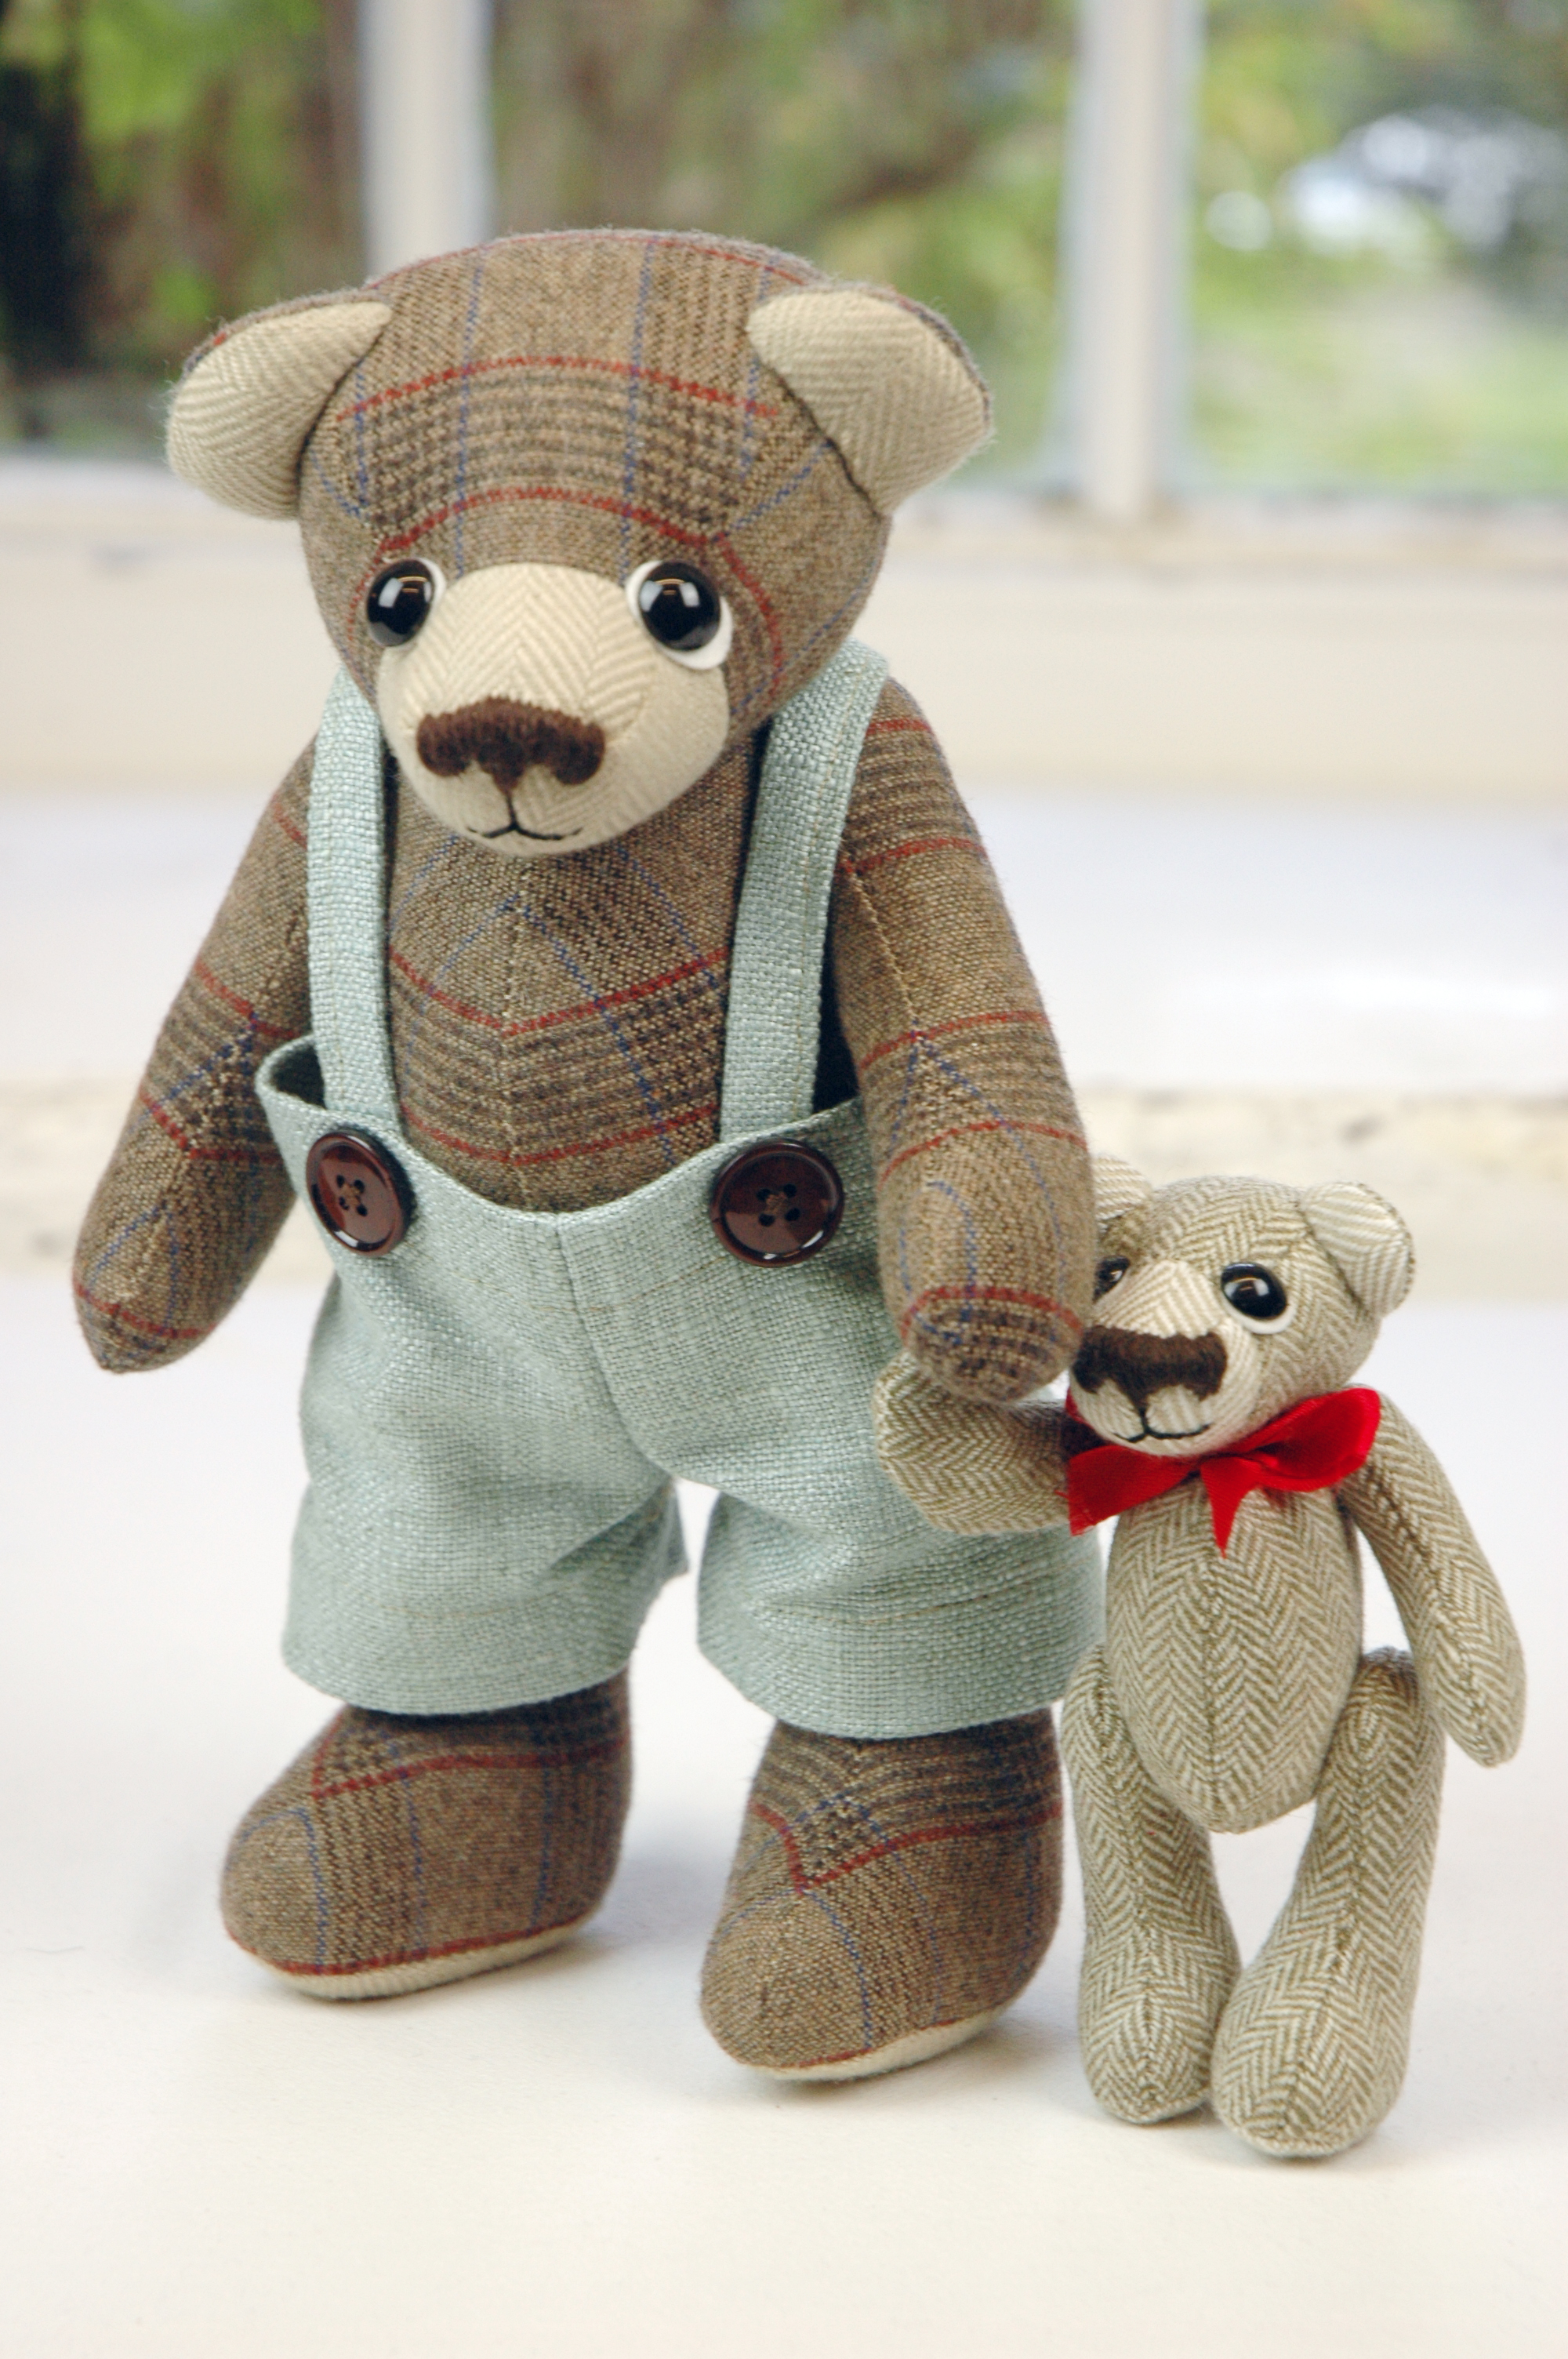 OOAK artist teddy bears by Laura Mirjami.